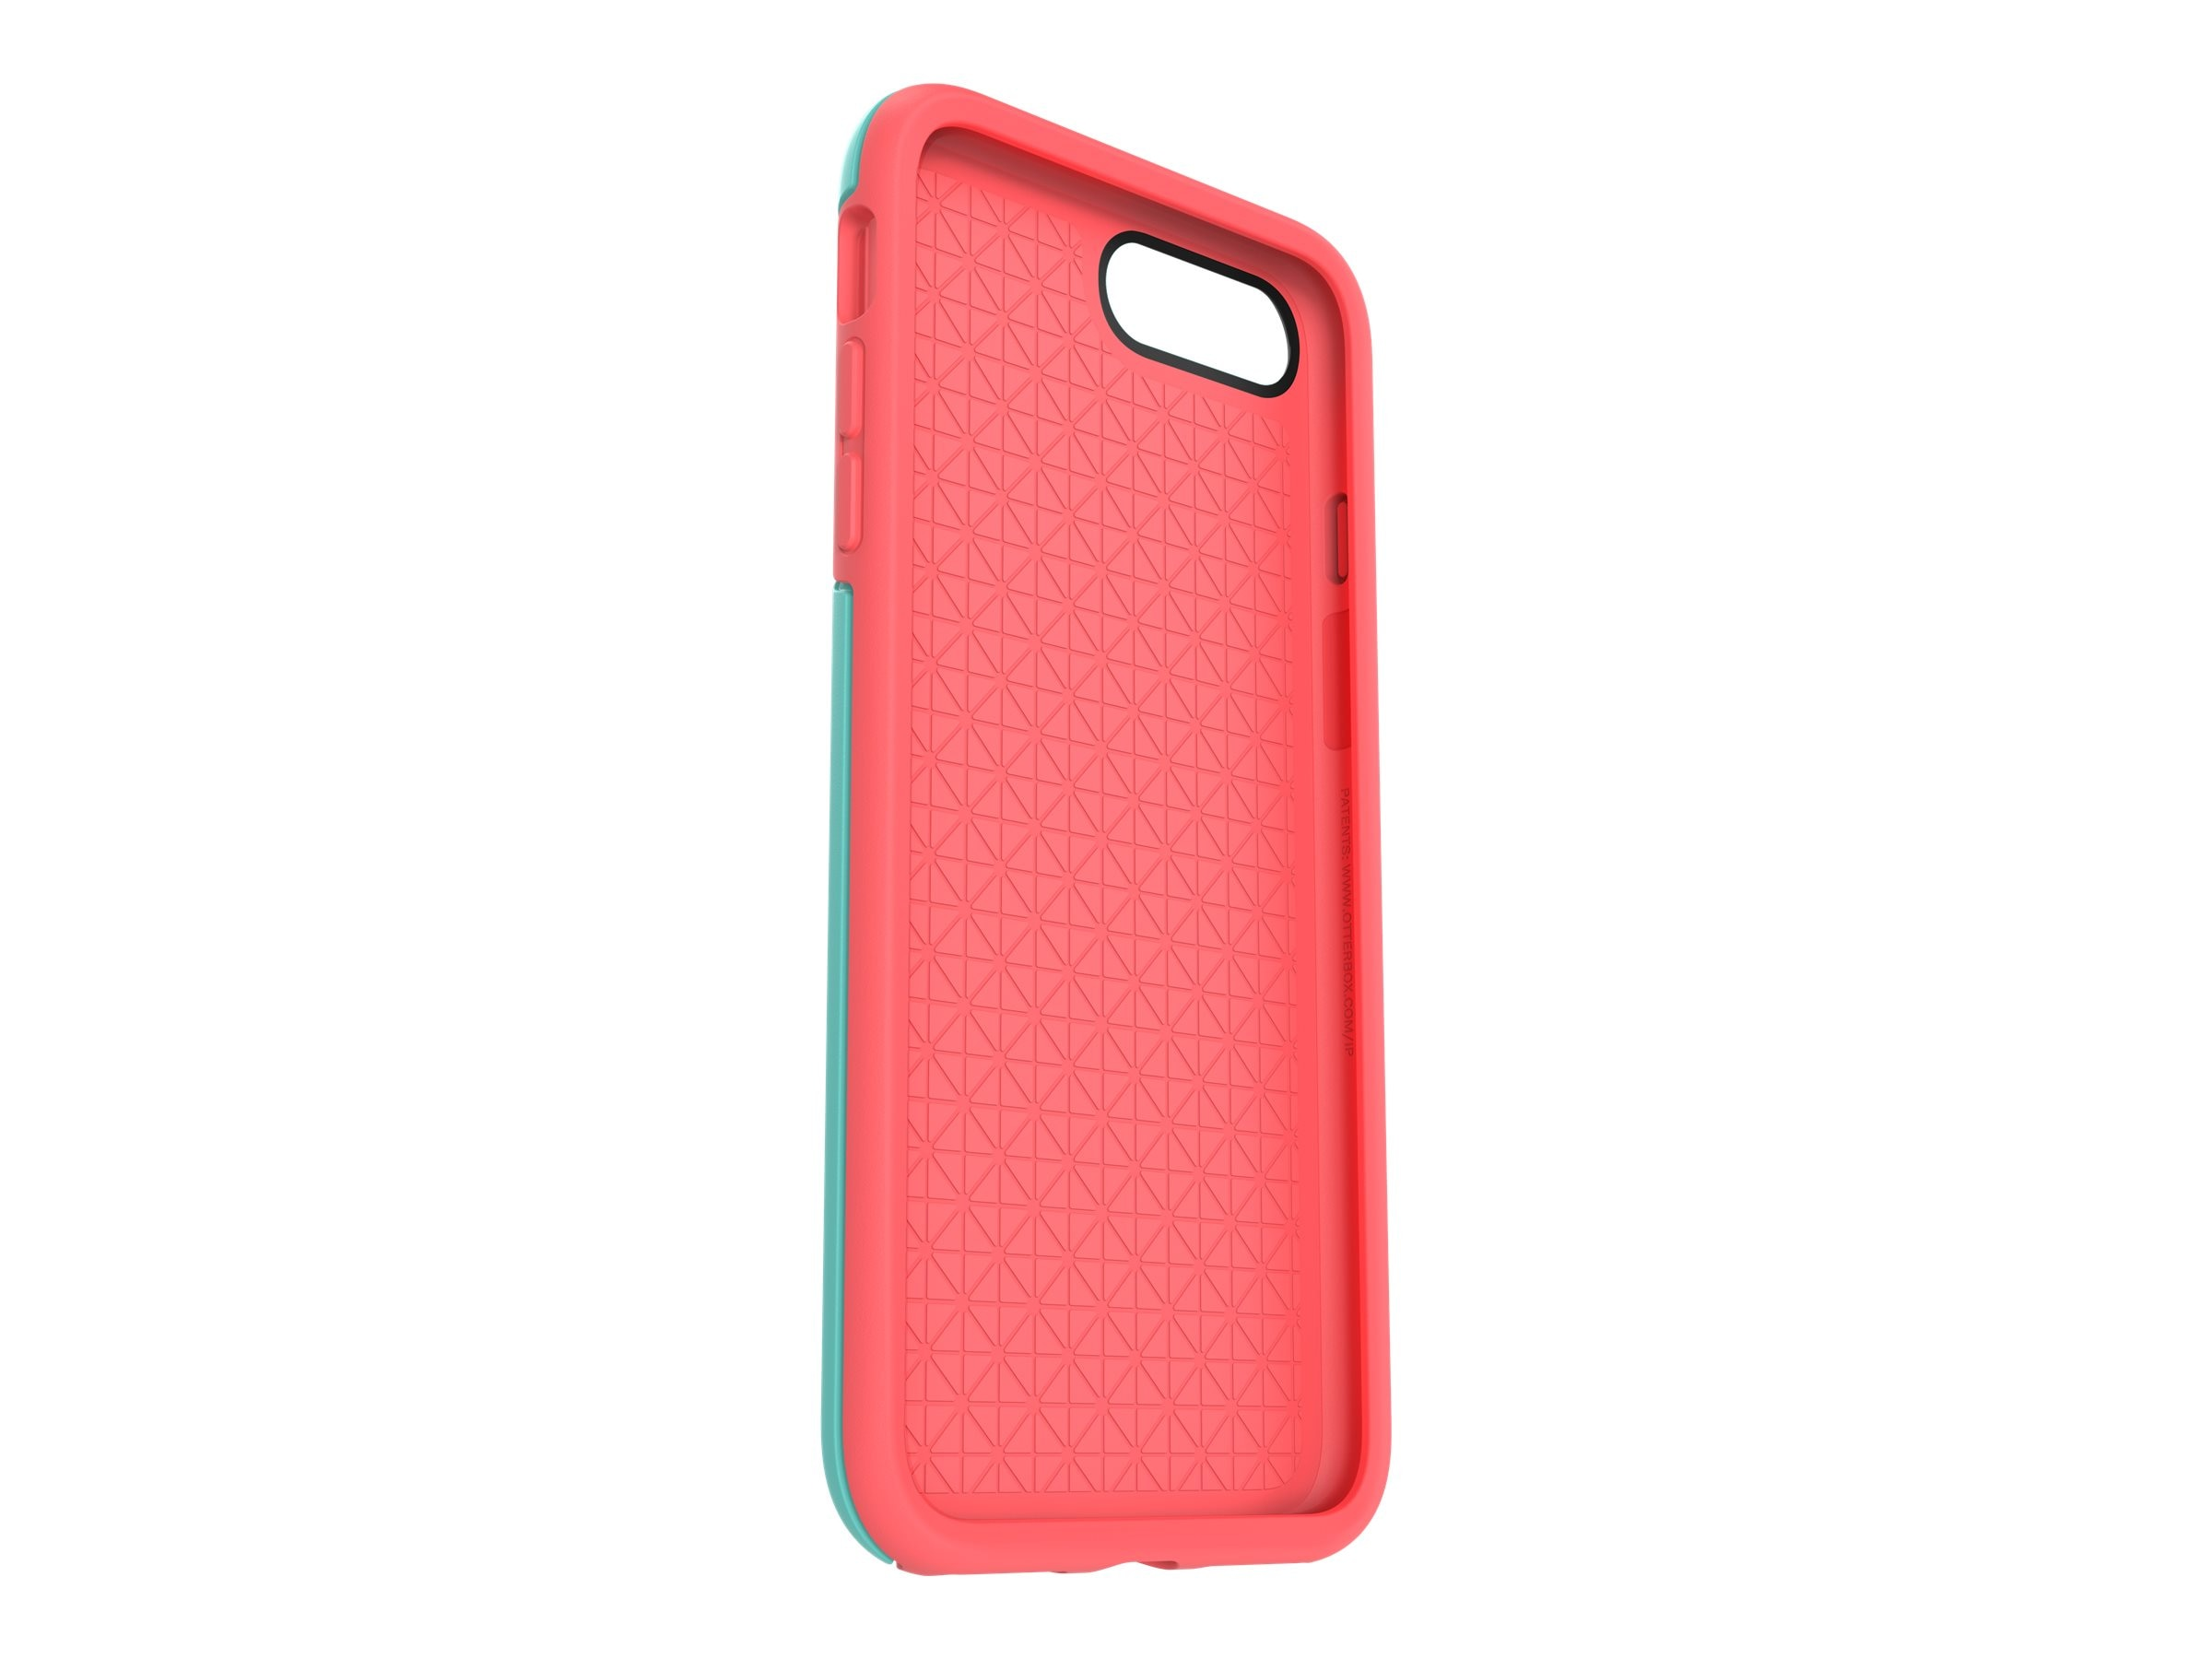 OtterBox Symmetry Case for iPhone 7 Plus, Candy Shop